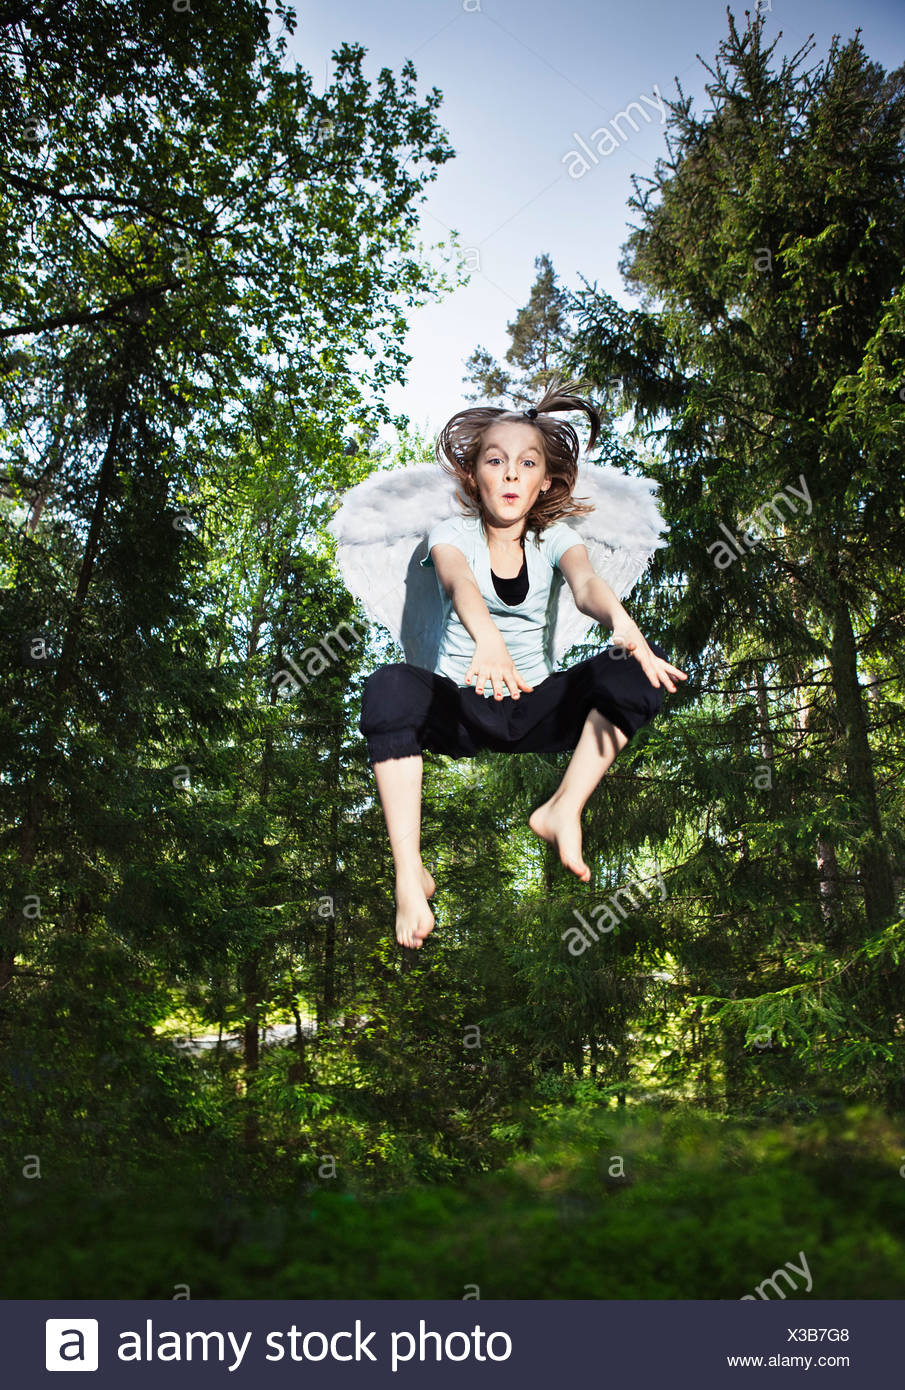 Girl wearing wings and jumping in forest - Stock Image